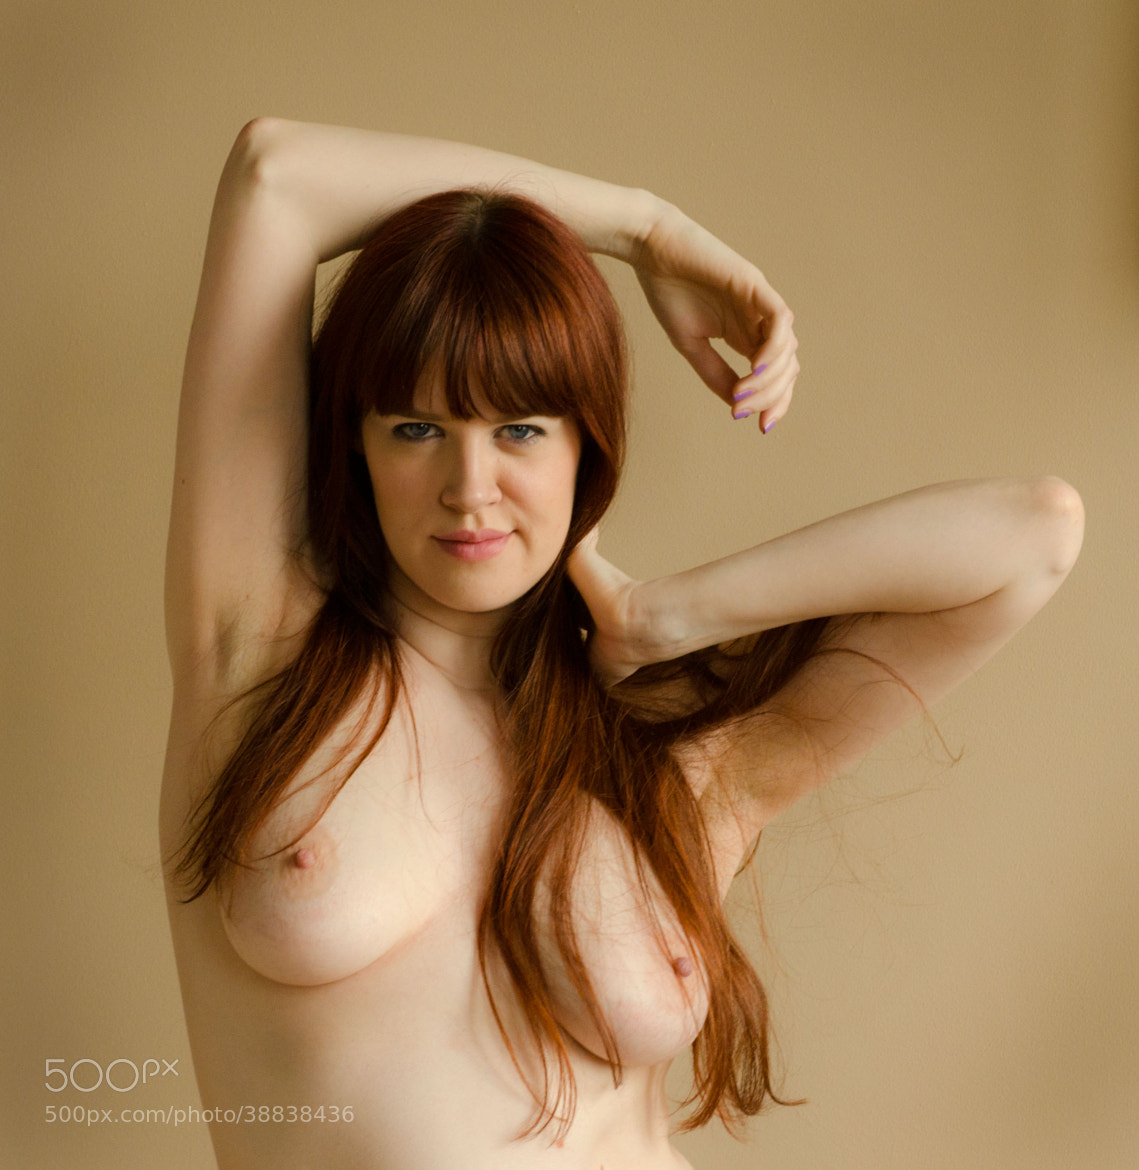 Photograph Zoe by Greendale Images on 500px